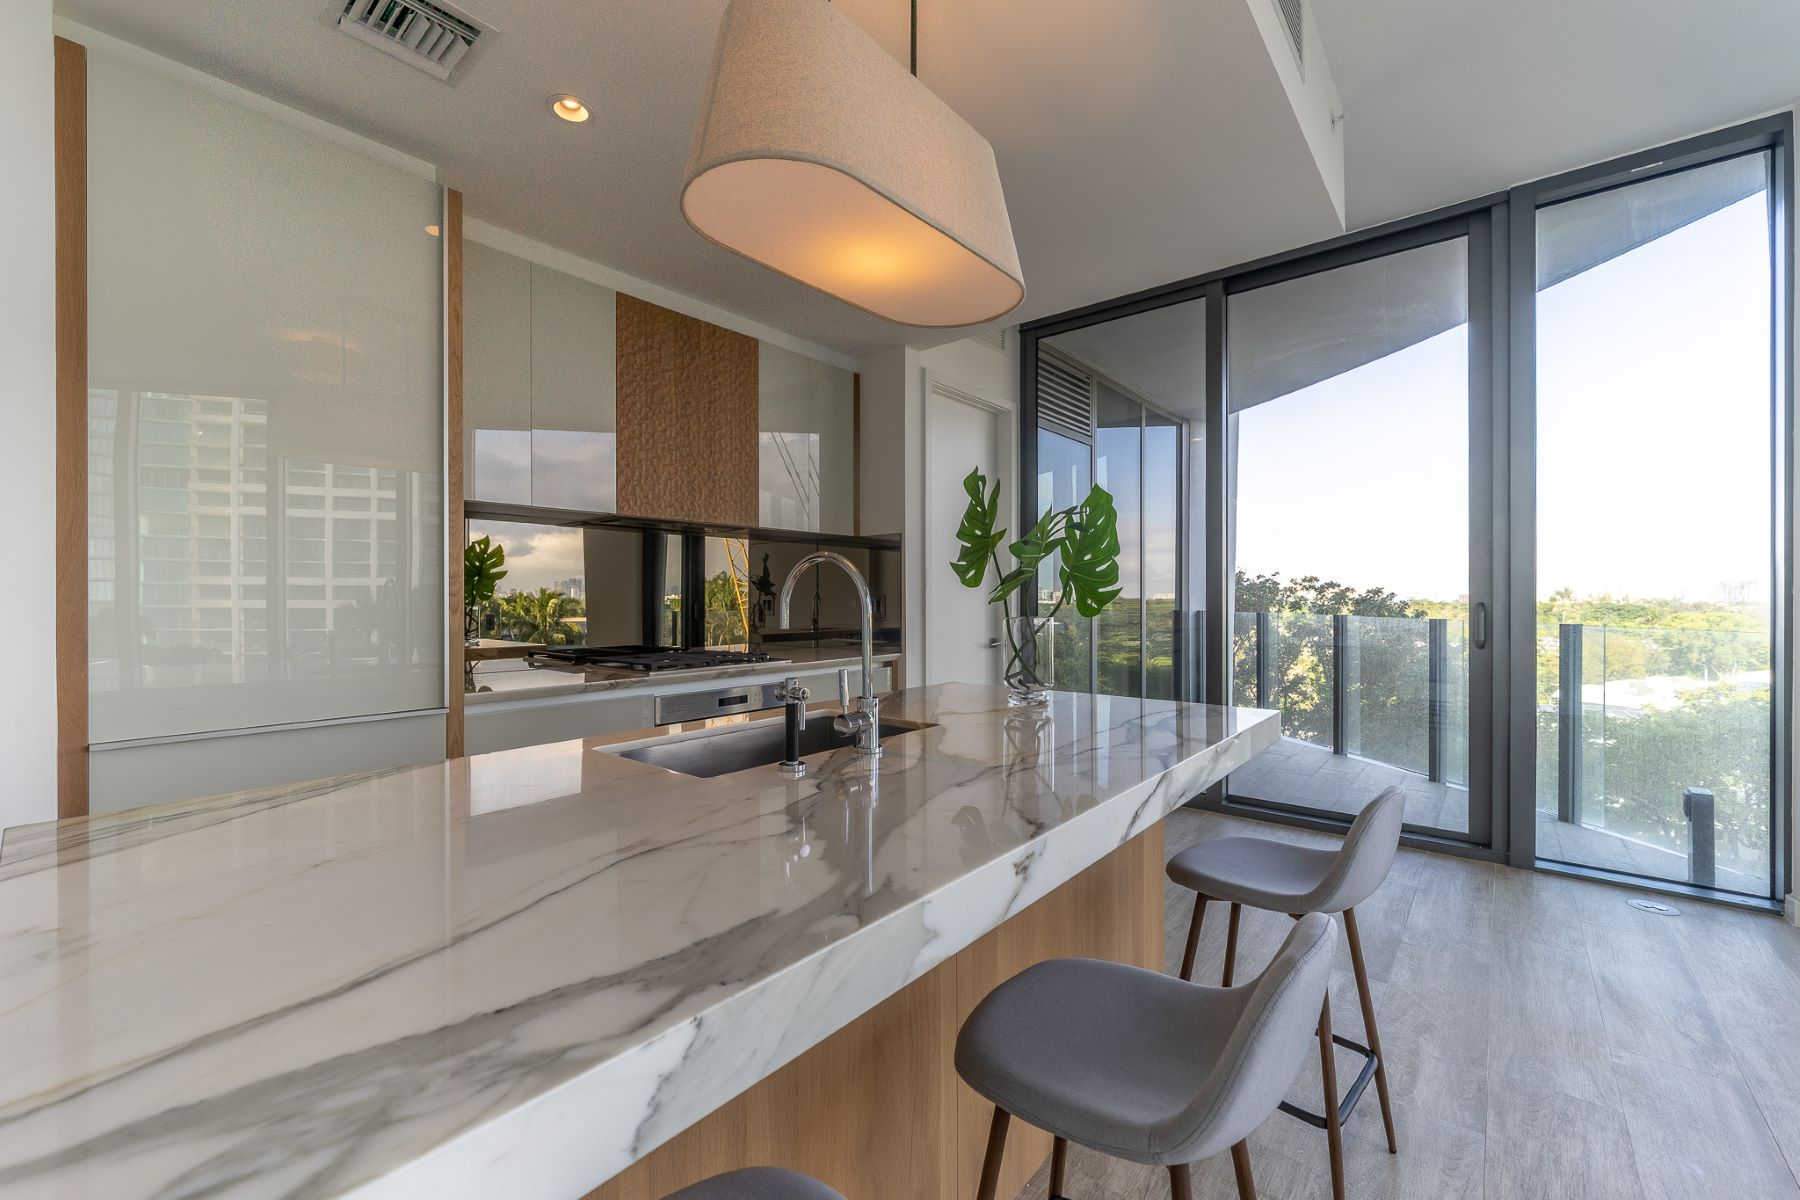 Single Family Homes for Sale at Park Grove Residences 2831 S Bayshore Dr 705 Coconut Grove, Florida 33133 United States